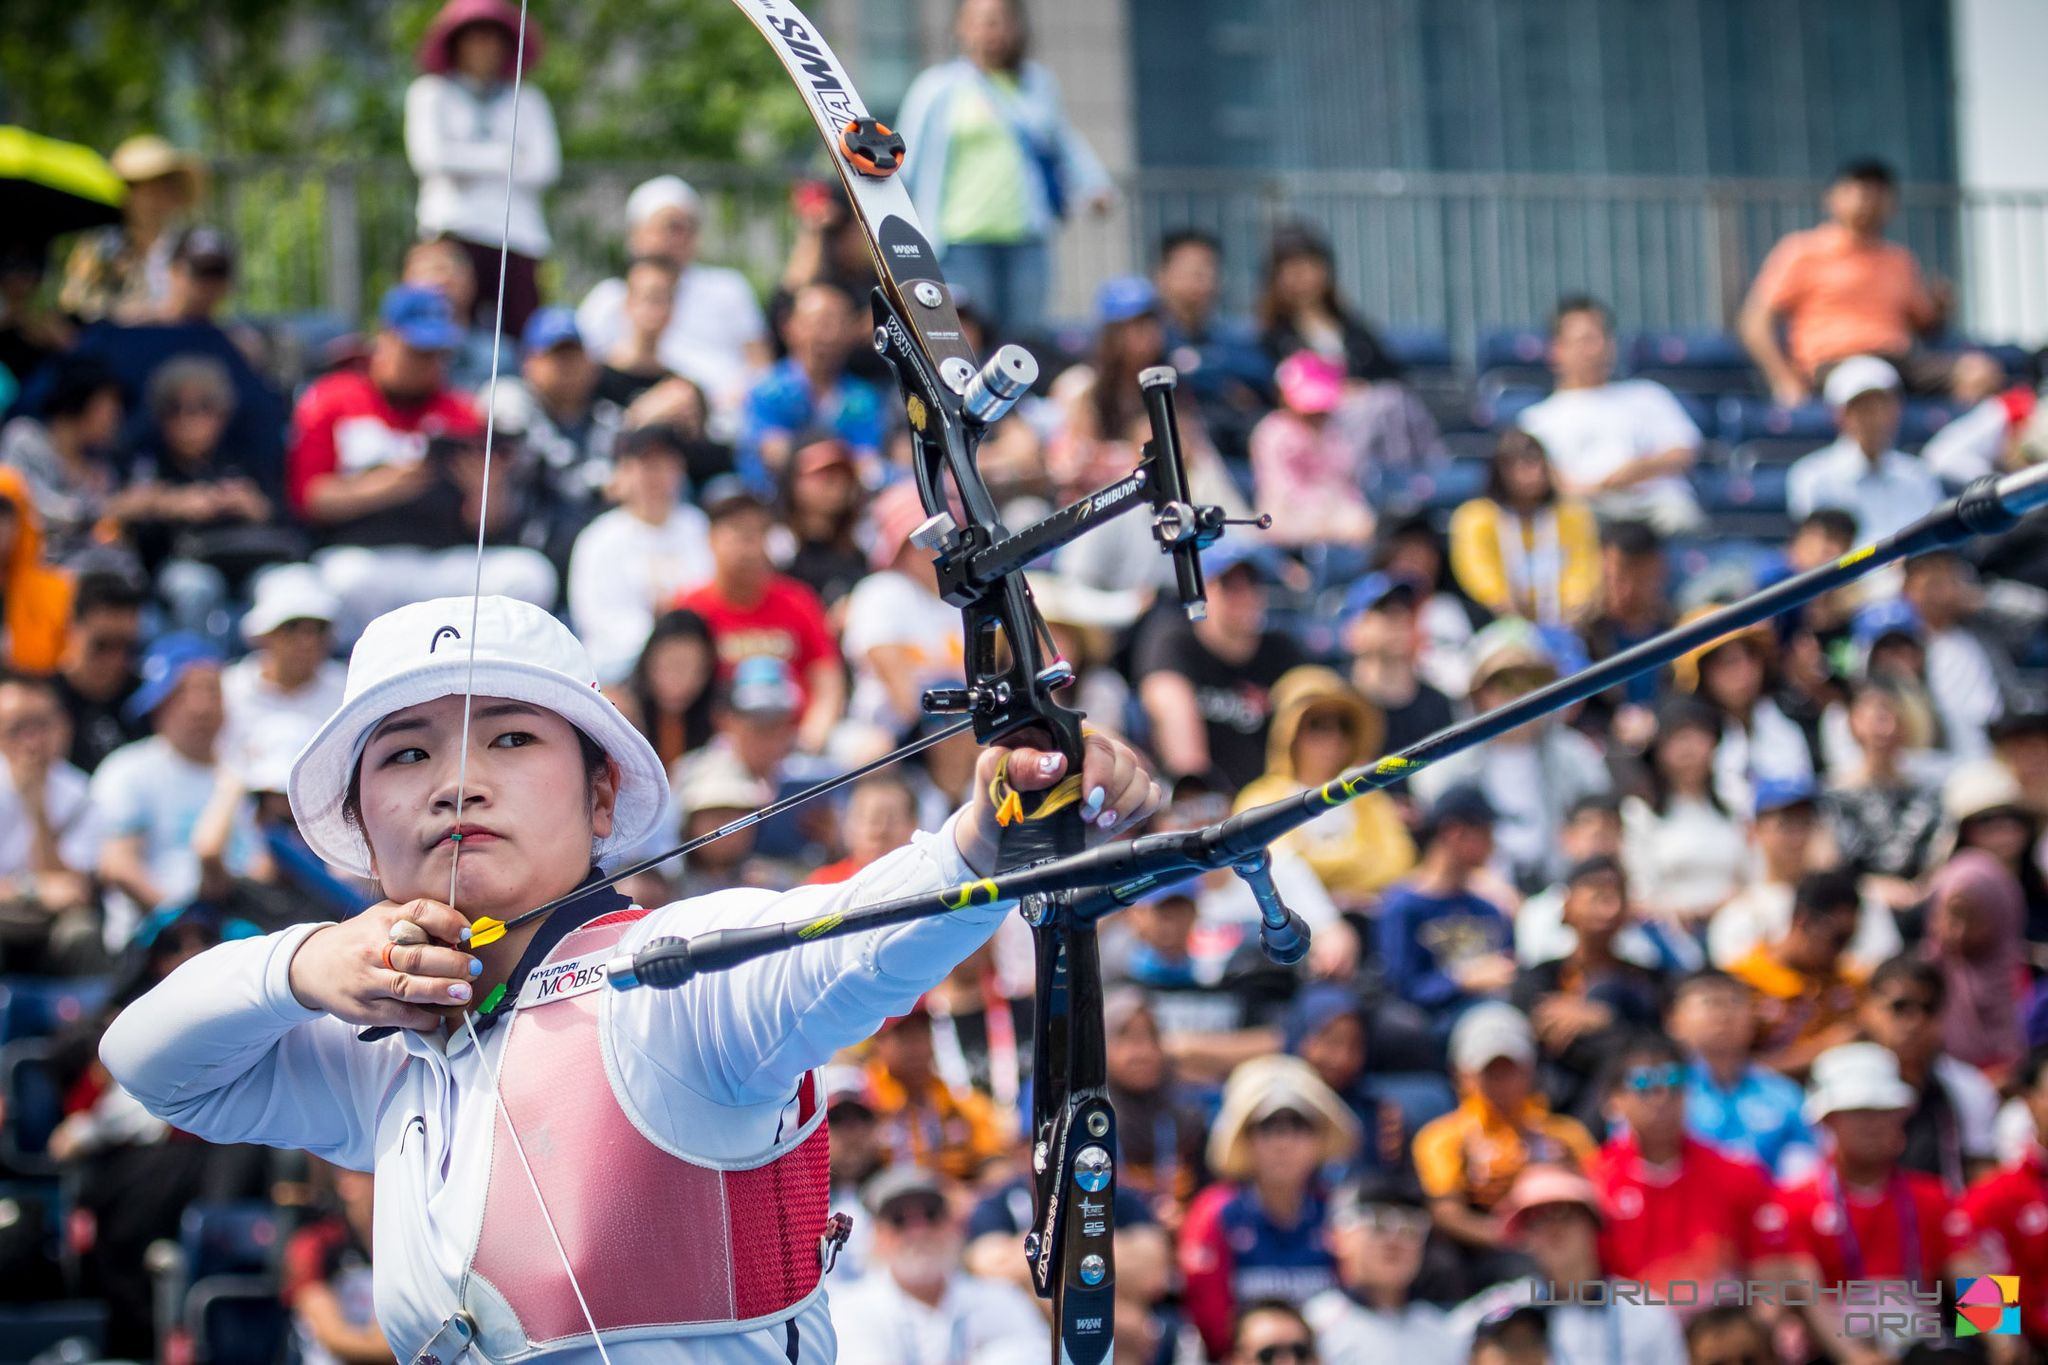 South Korea's Kang Chae-young finished the day with golds in the recurve women's singles and team events at the Archery World Cup in Shanghai ©World Archery